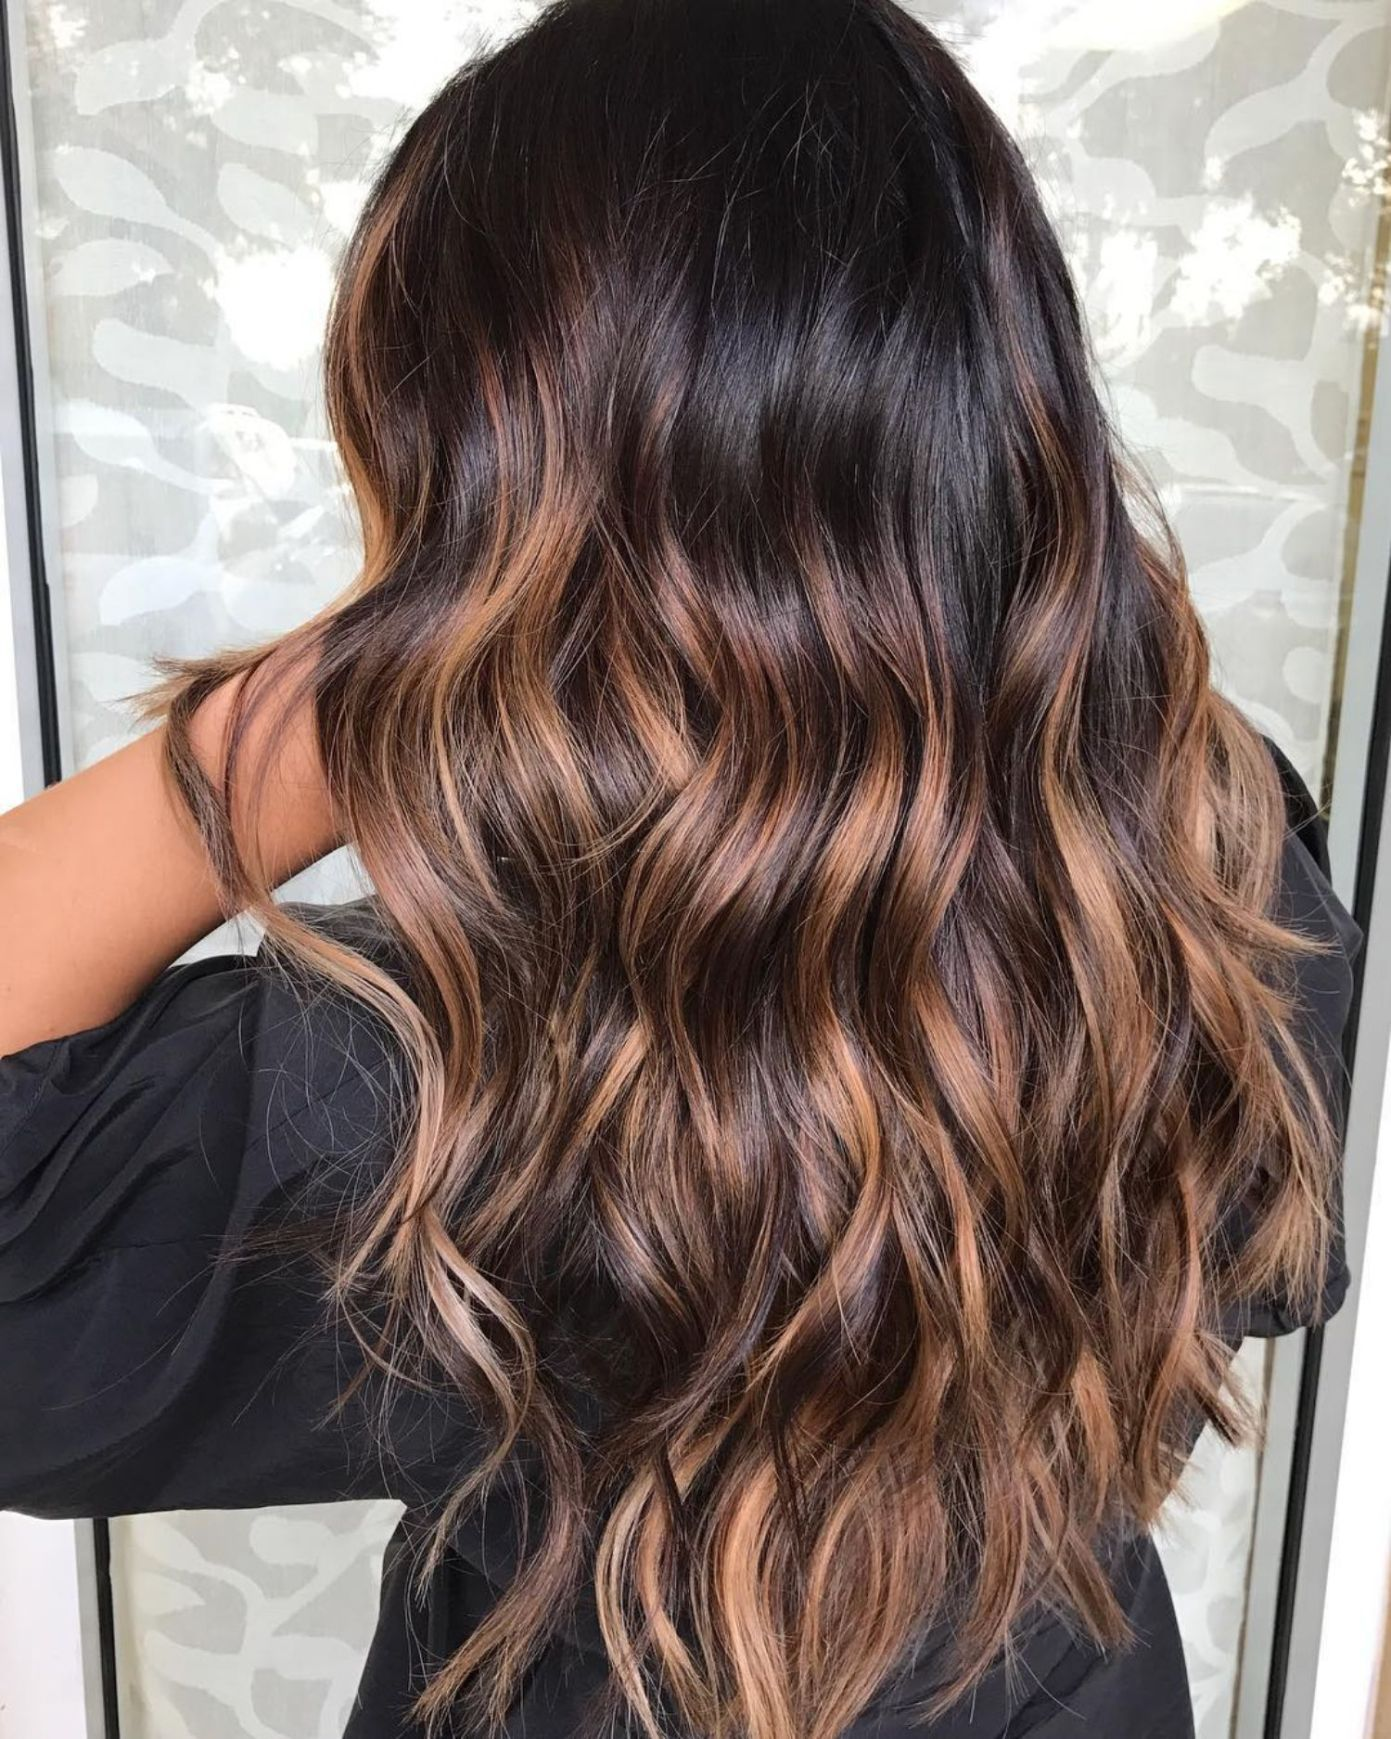 60 Chocolate Brown Hair Color Ideas For Brunettes In 2019 | Caramel